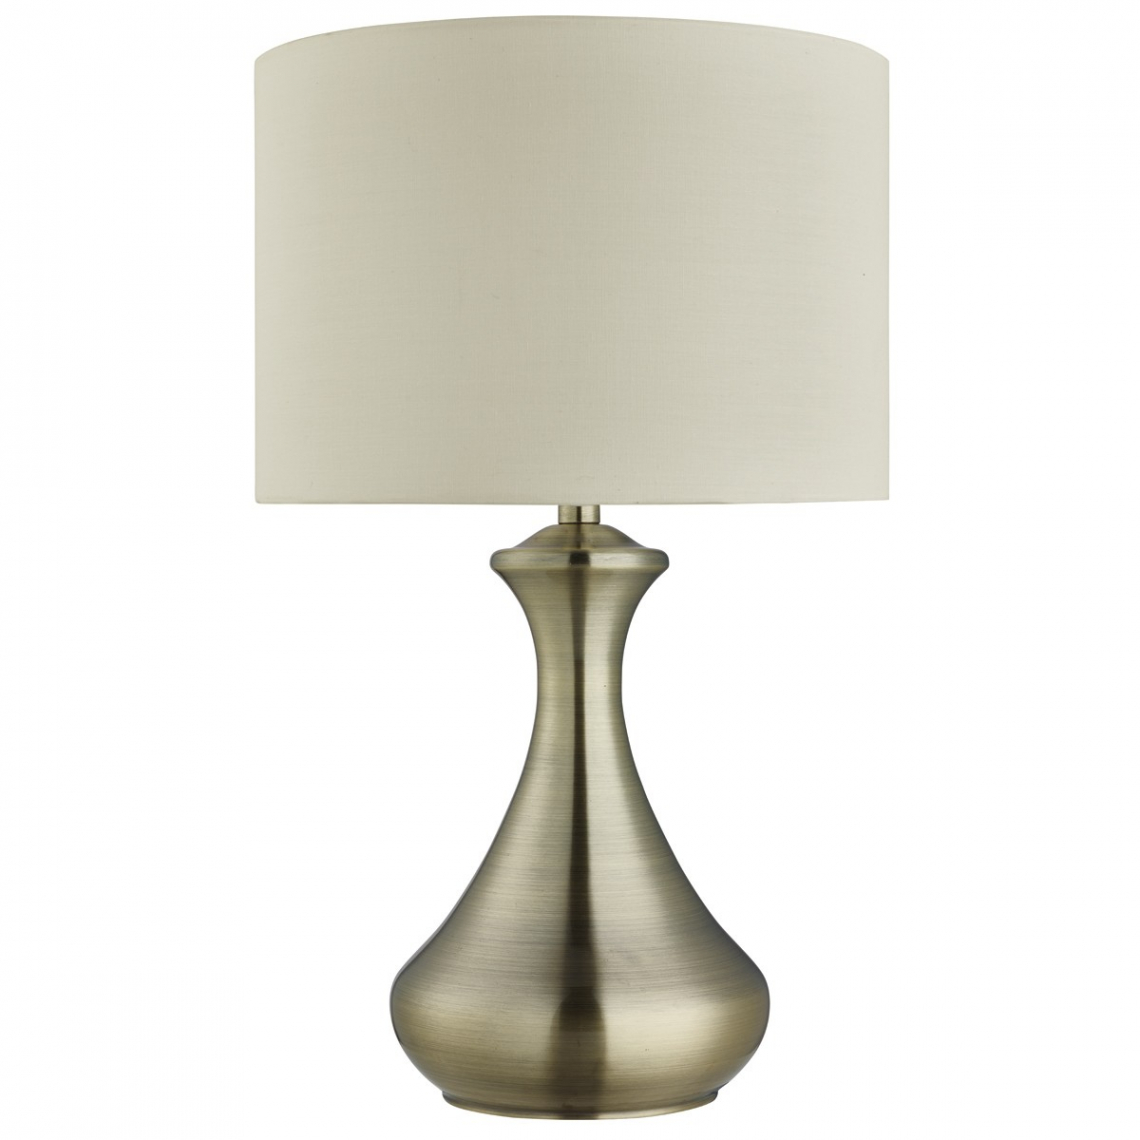 Antique Brass Touch Table Lamp Complete with Cream Fabric